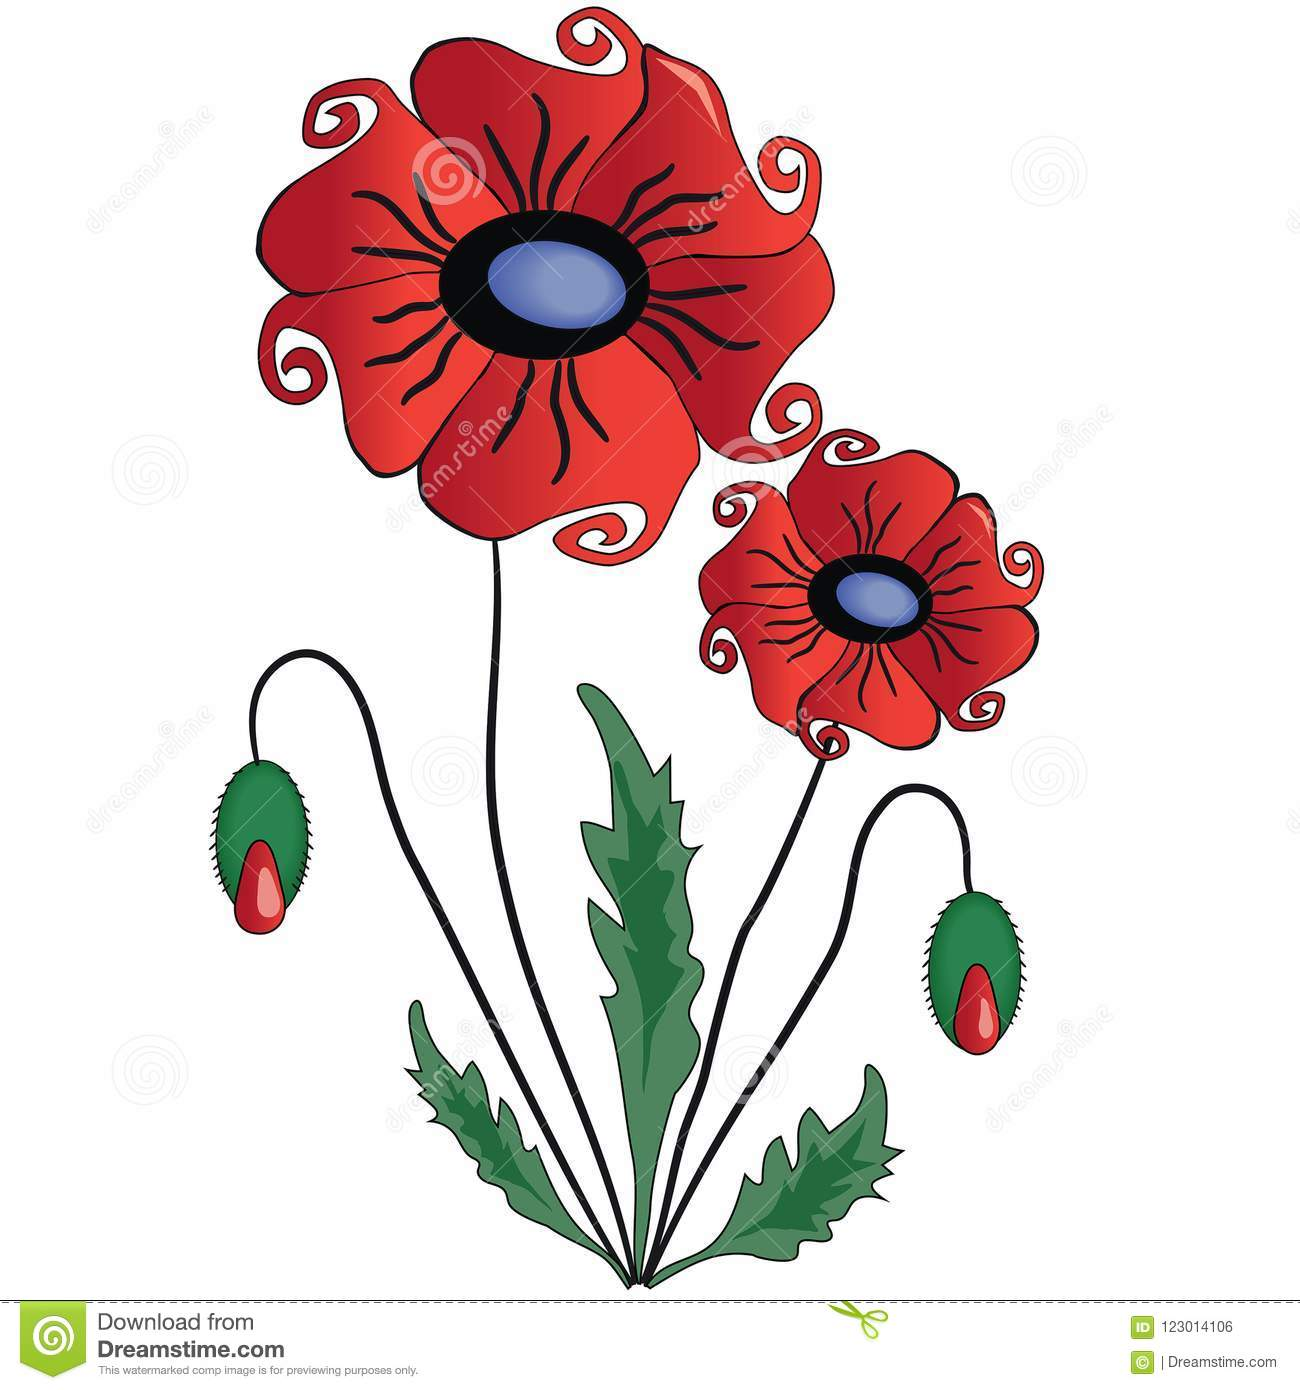 Beautiful red poppy flower with leaves stock vector illustration download beautiful red poppy flower with leaves stock vector illustration of scarlet bloody mightylinksfo